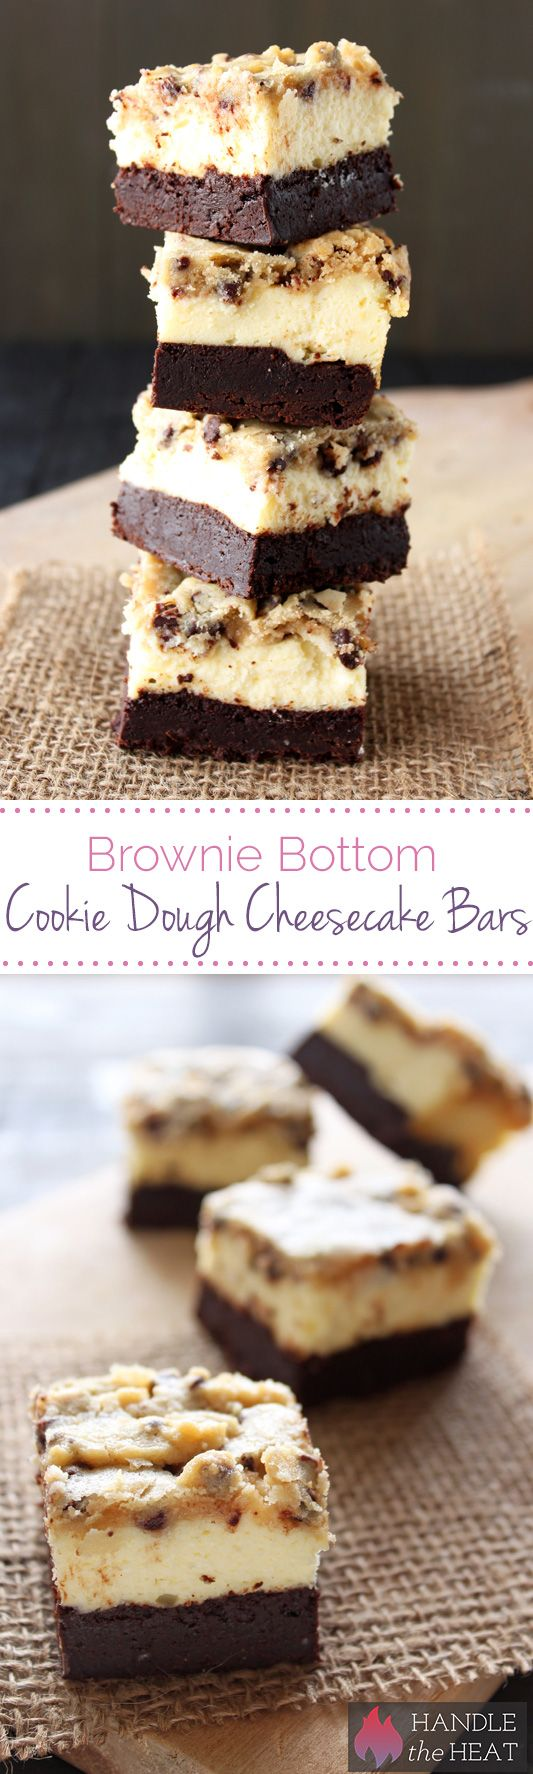 Brownie Bottom Cookie Dough Cheesecake Bars - OUTRAGEOUS…